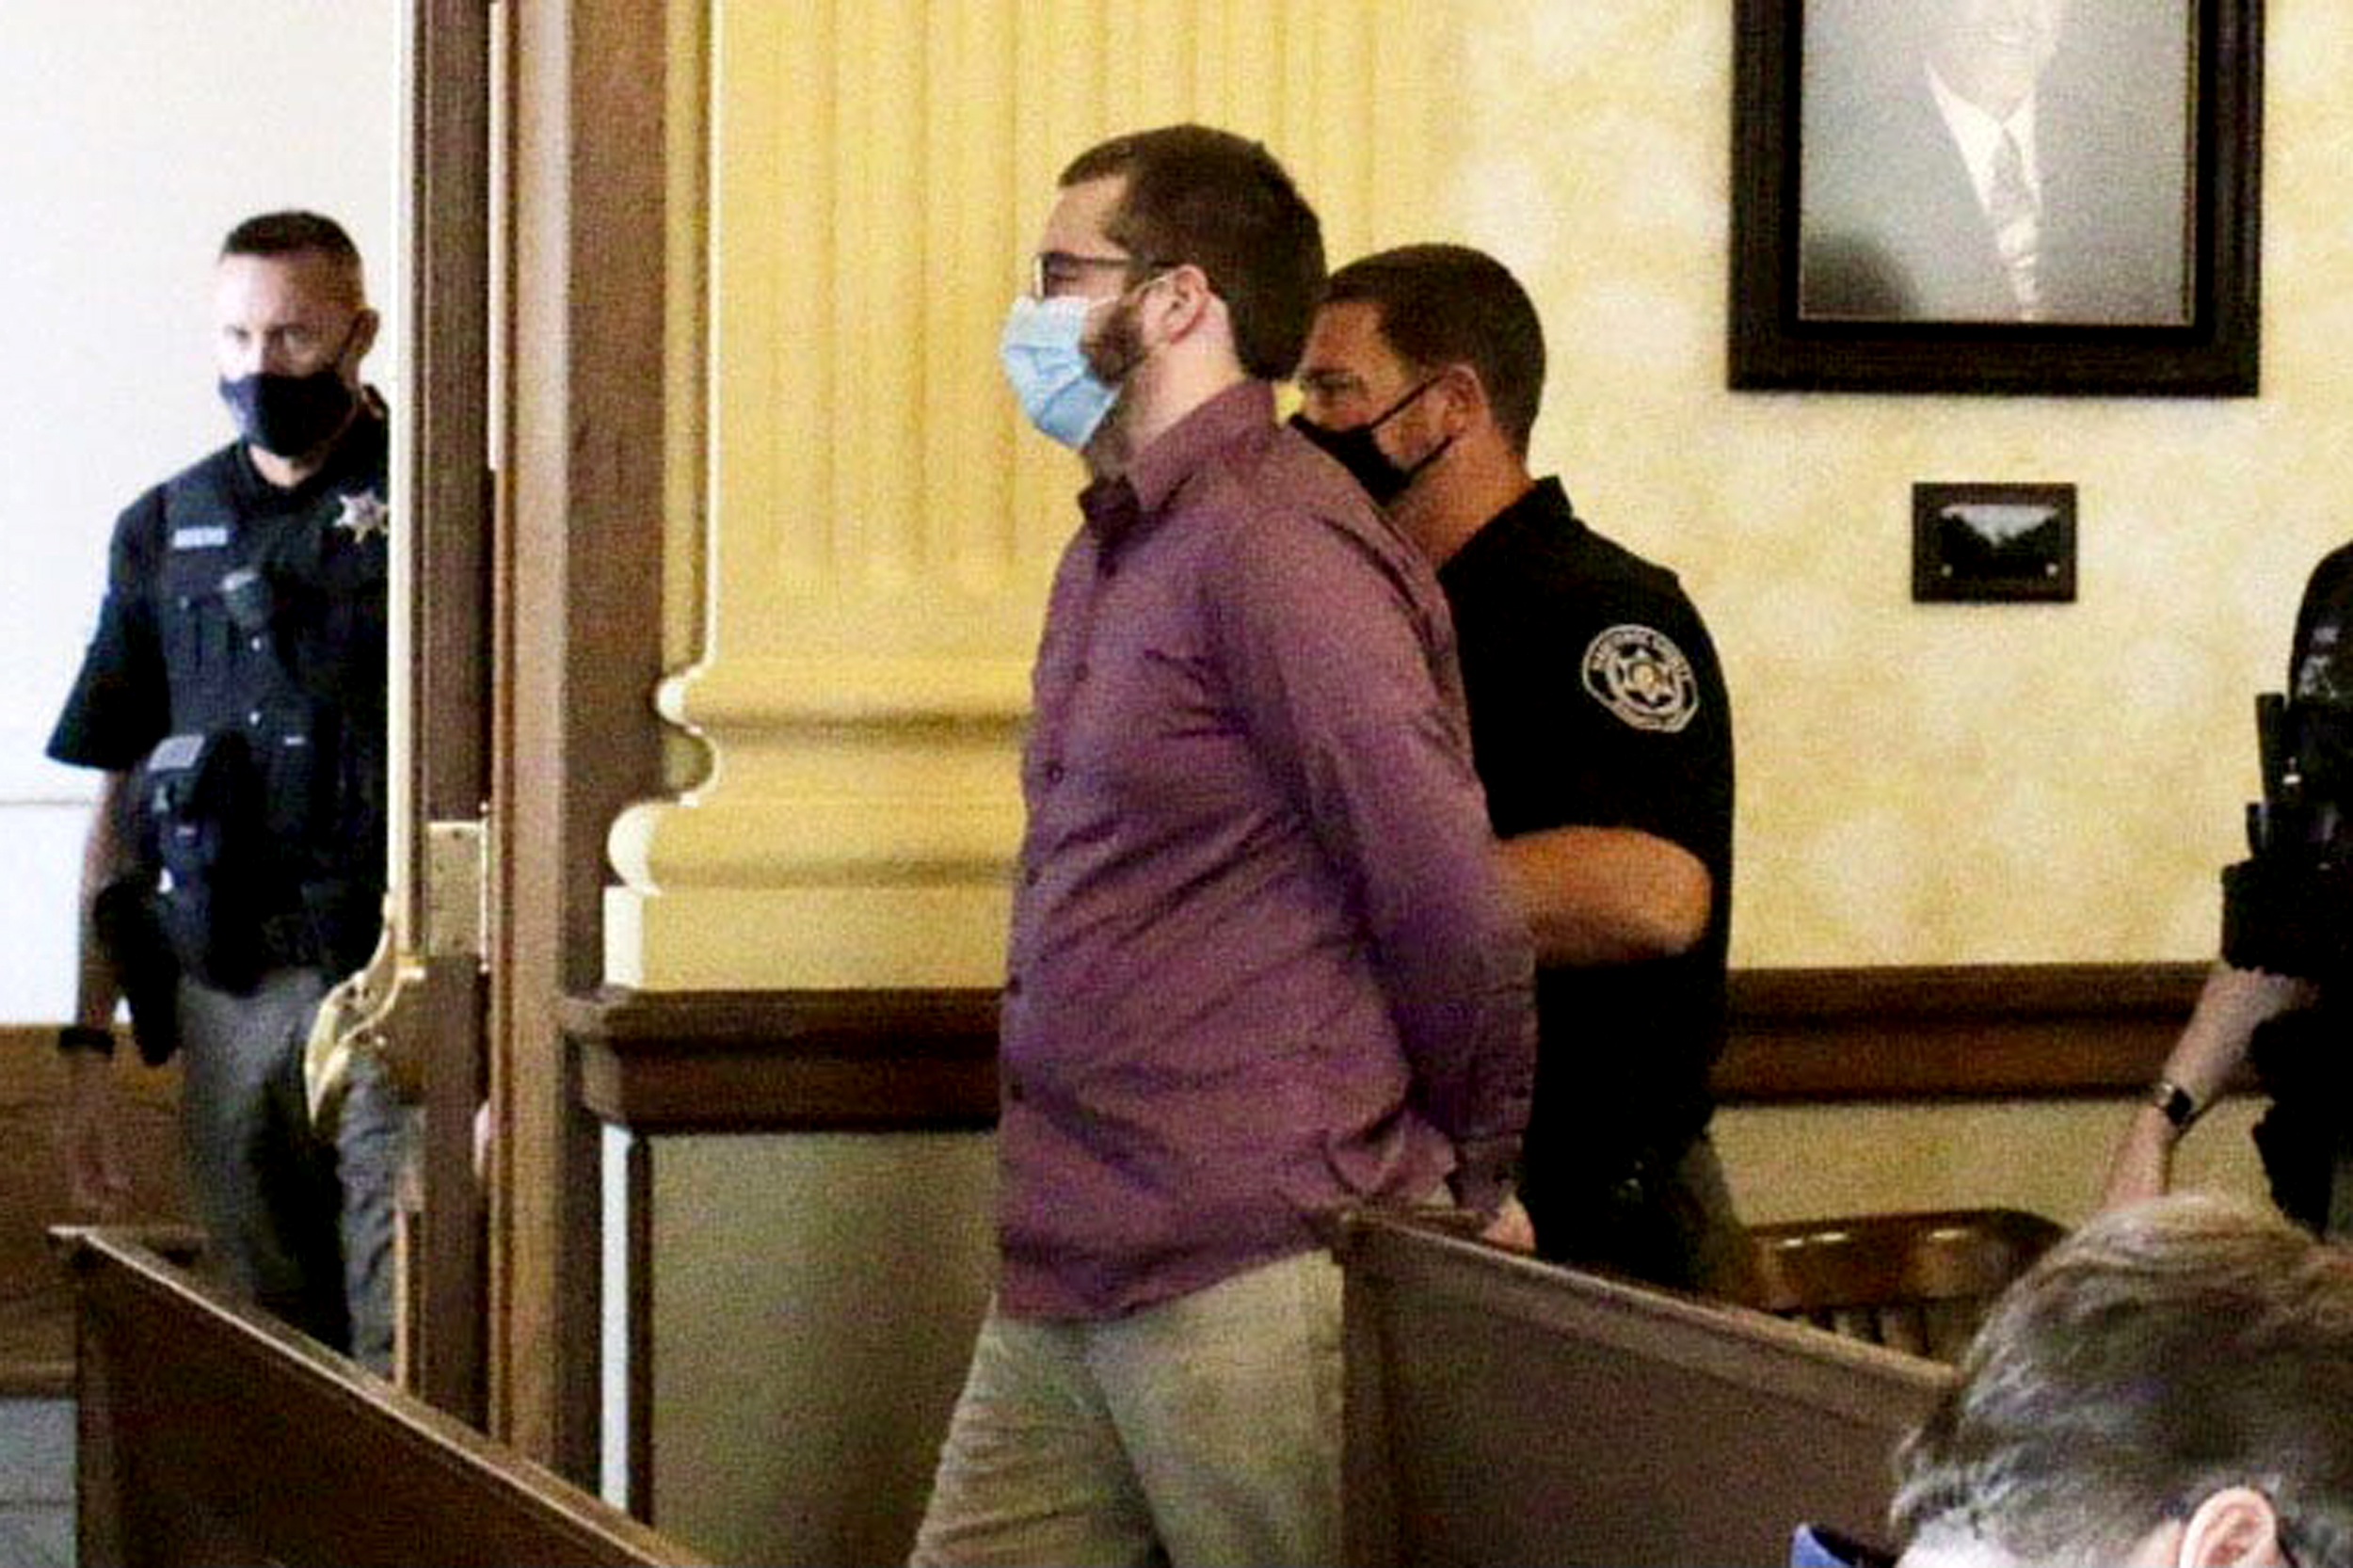 Wisconsin teen sentenced to 20 years for torture death of 7-year-old